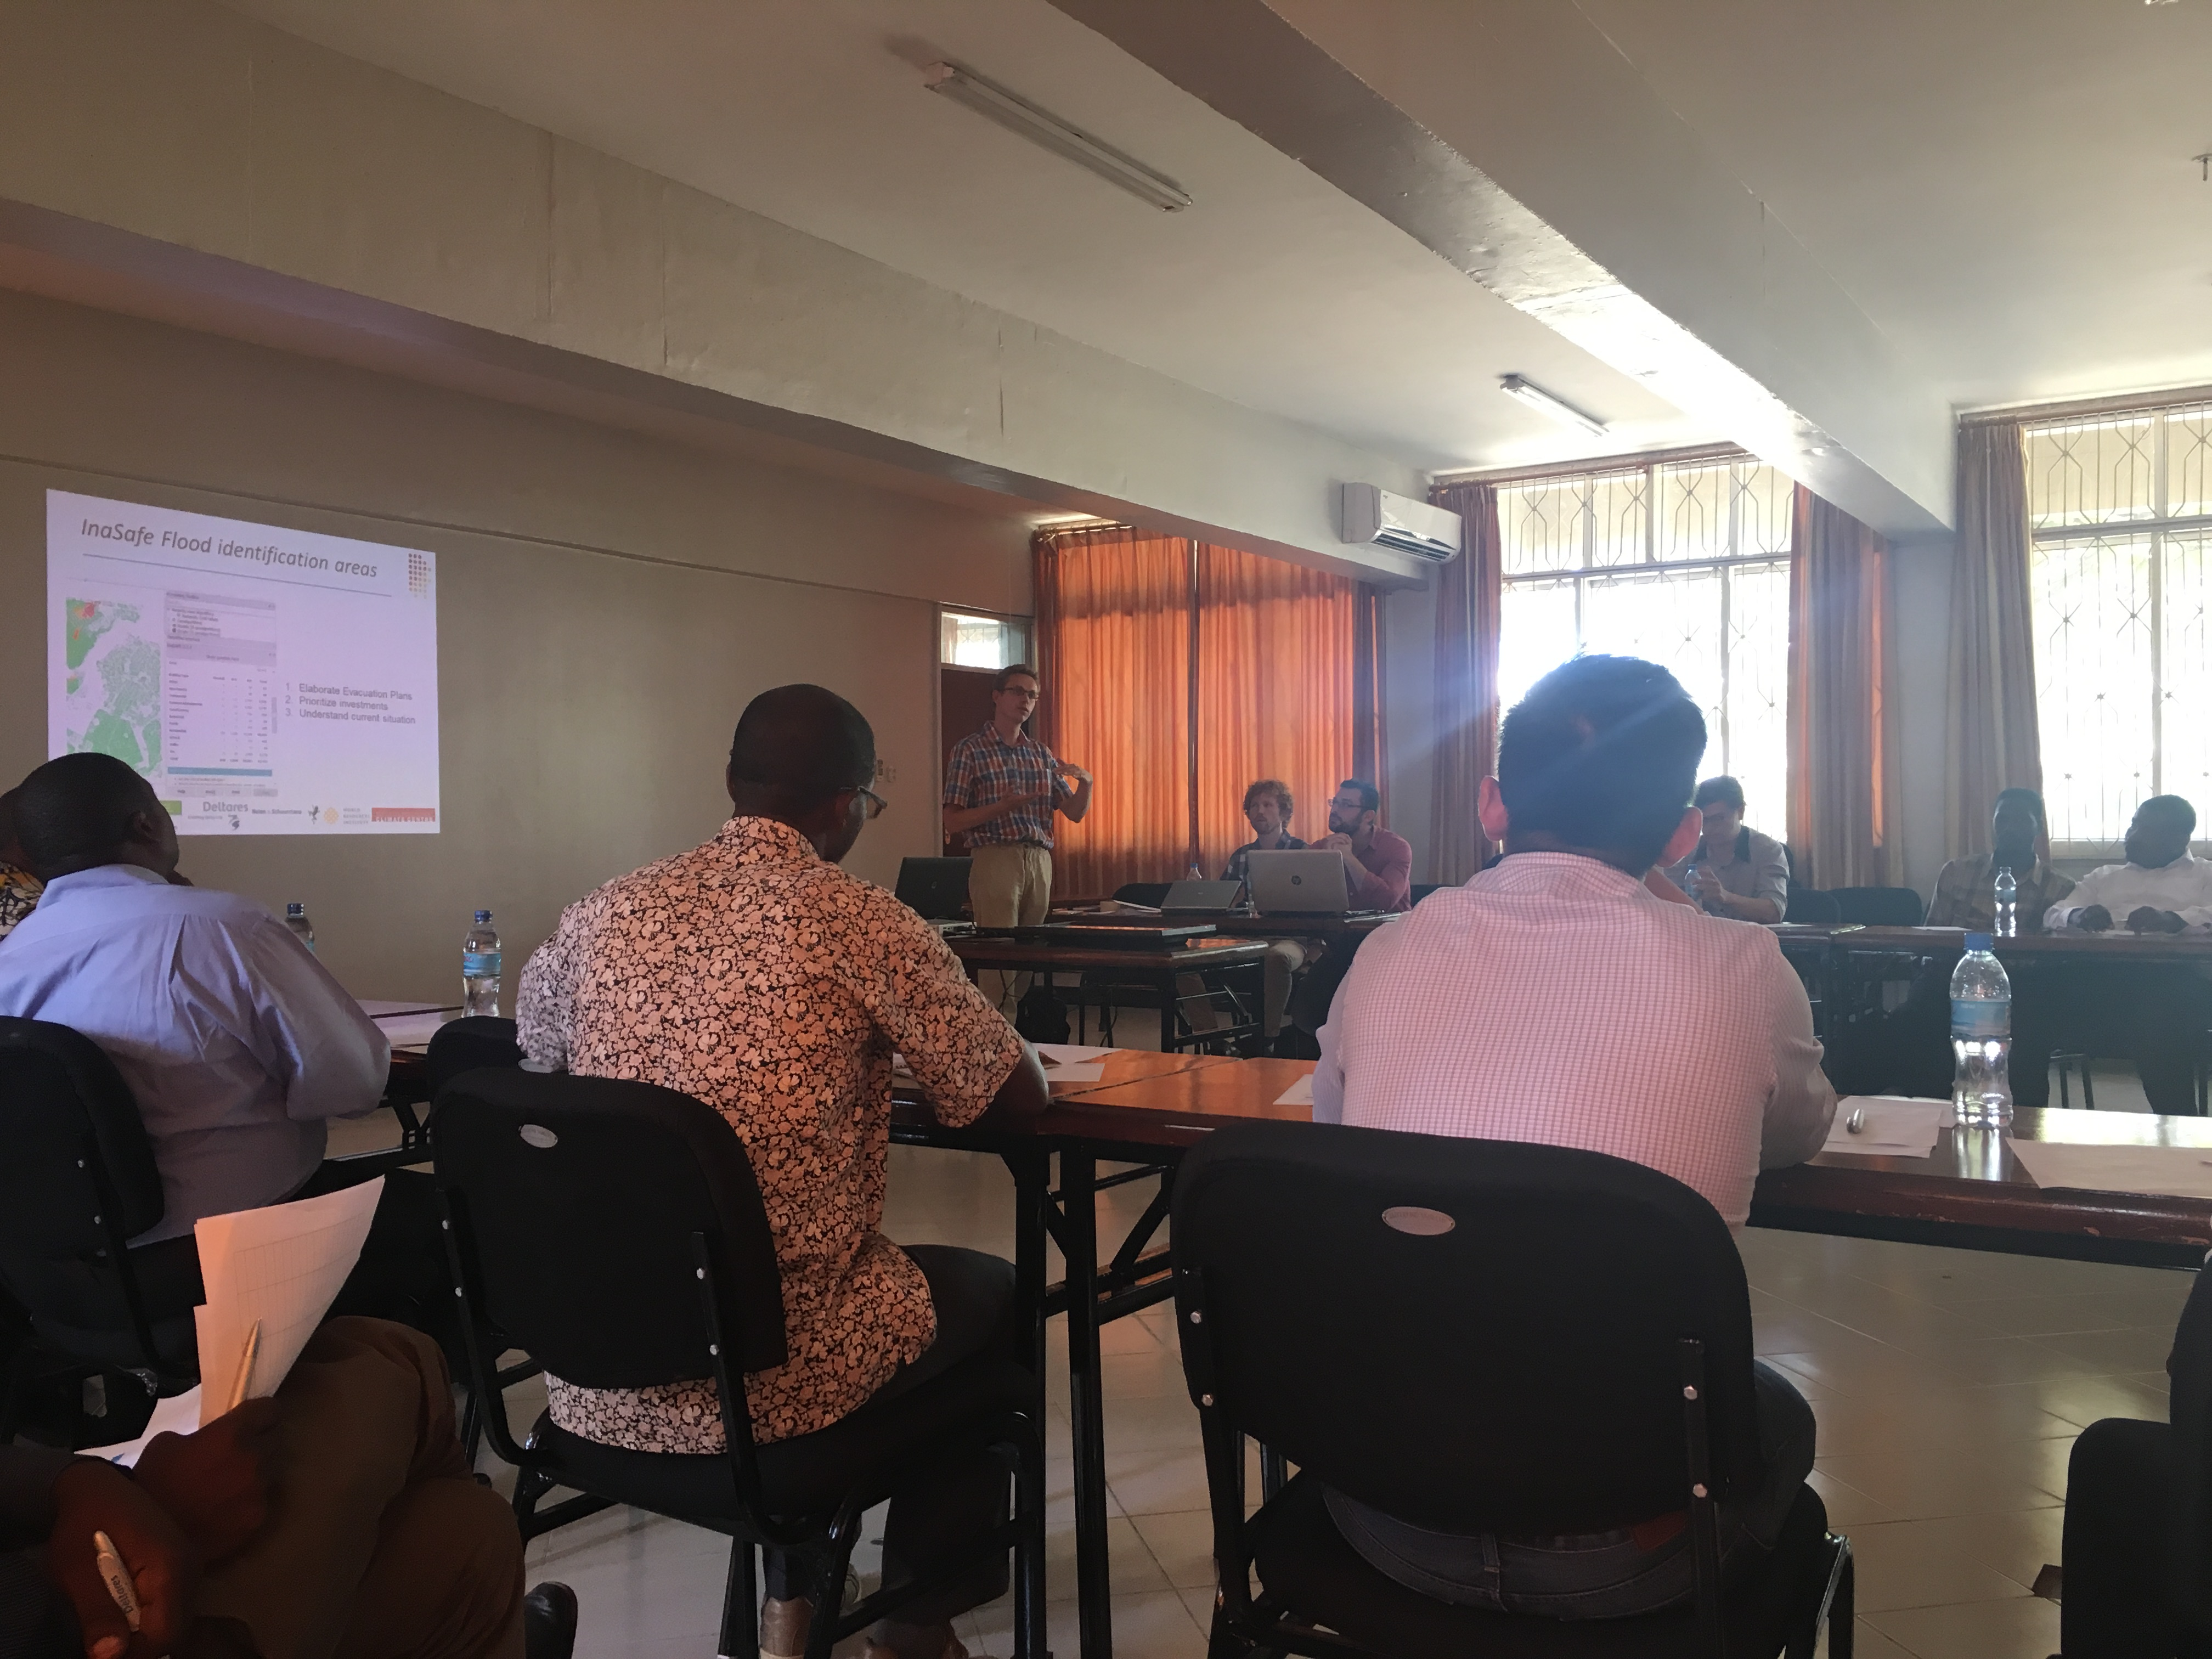 Sitting in on a World Bank Open Data presentation at the University of Dar es Salaam. Experts spoke about using new elevation data paired with updated Open Street Map data to better plan evacuation routes during floods in Dar and other cities in Tanzania